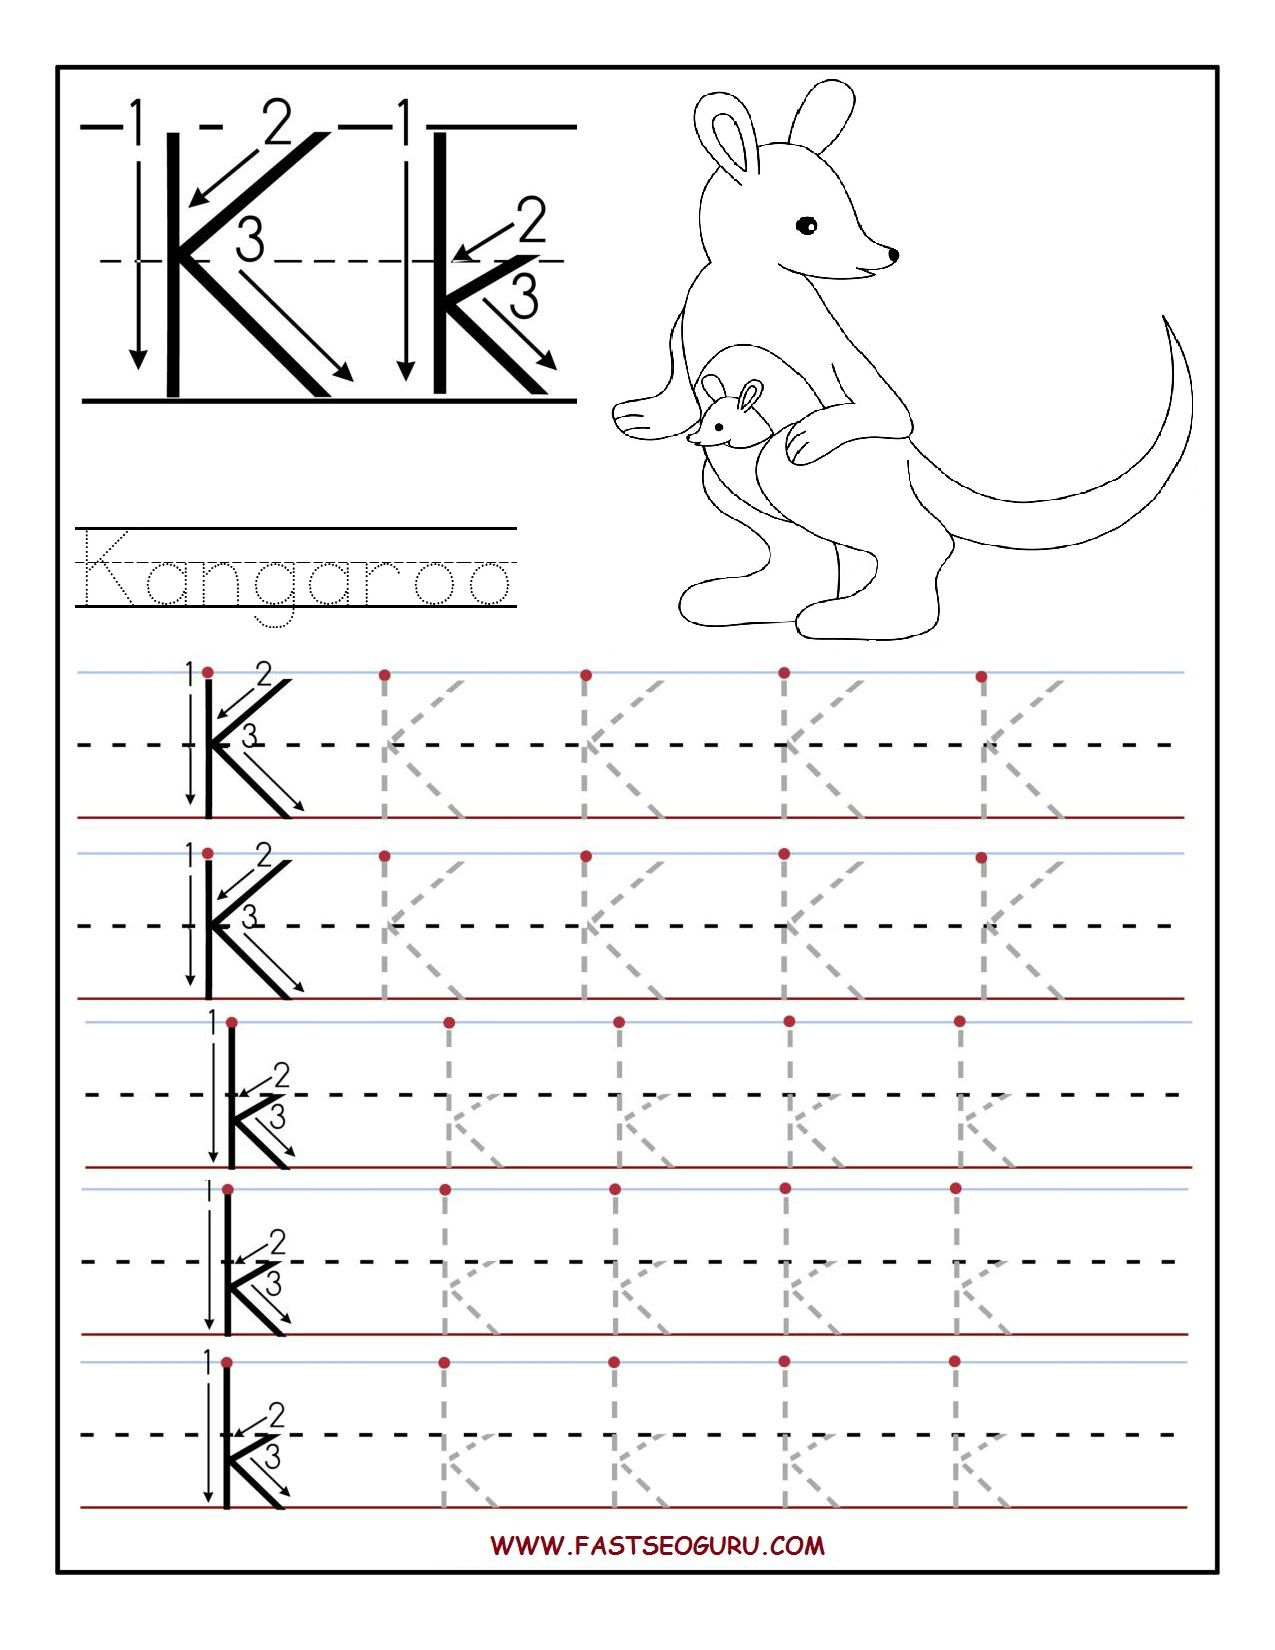 Printable Letter K Tracing Worksheets For Preschool | Learning - Free Printable Letter K Worksheets